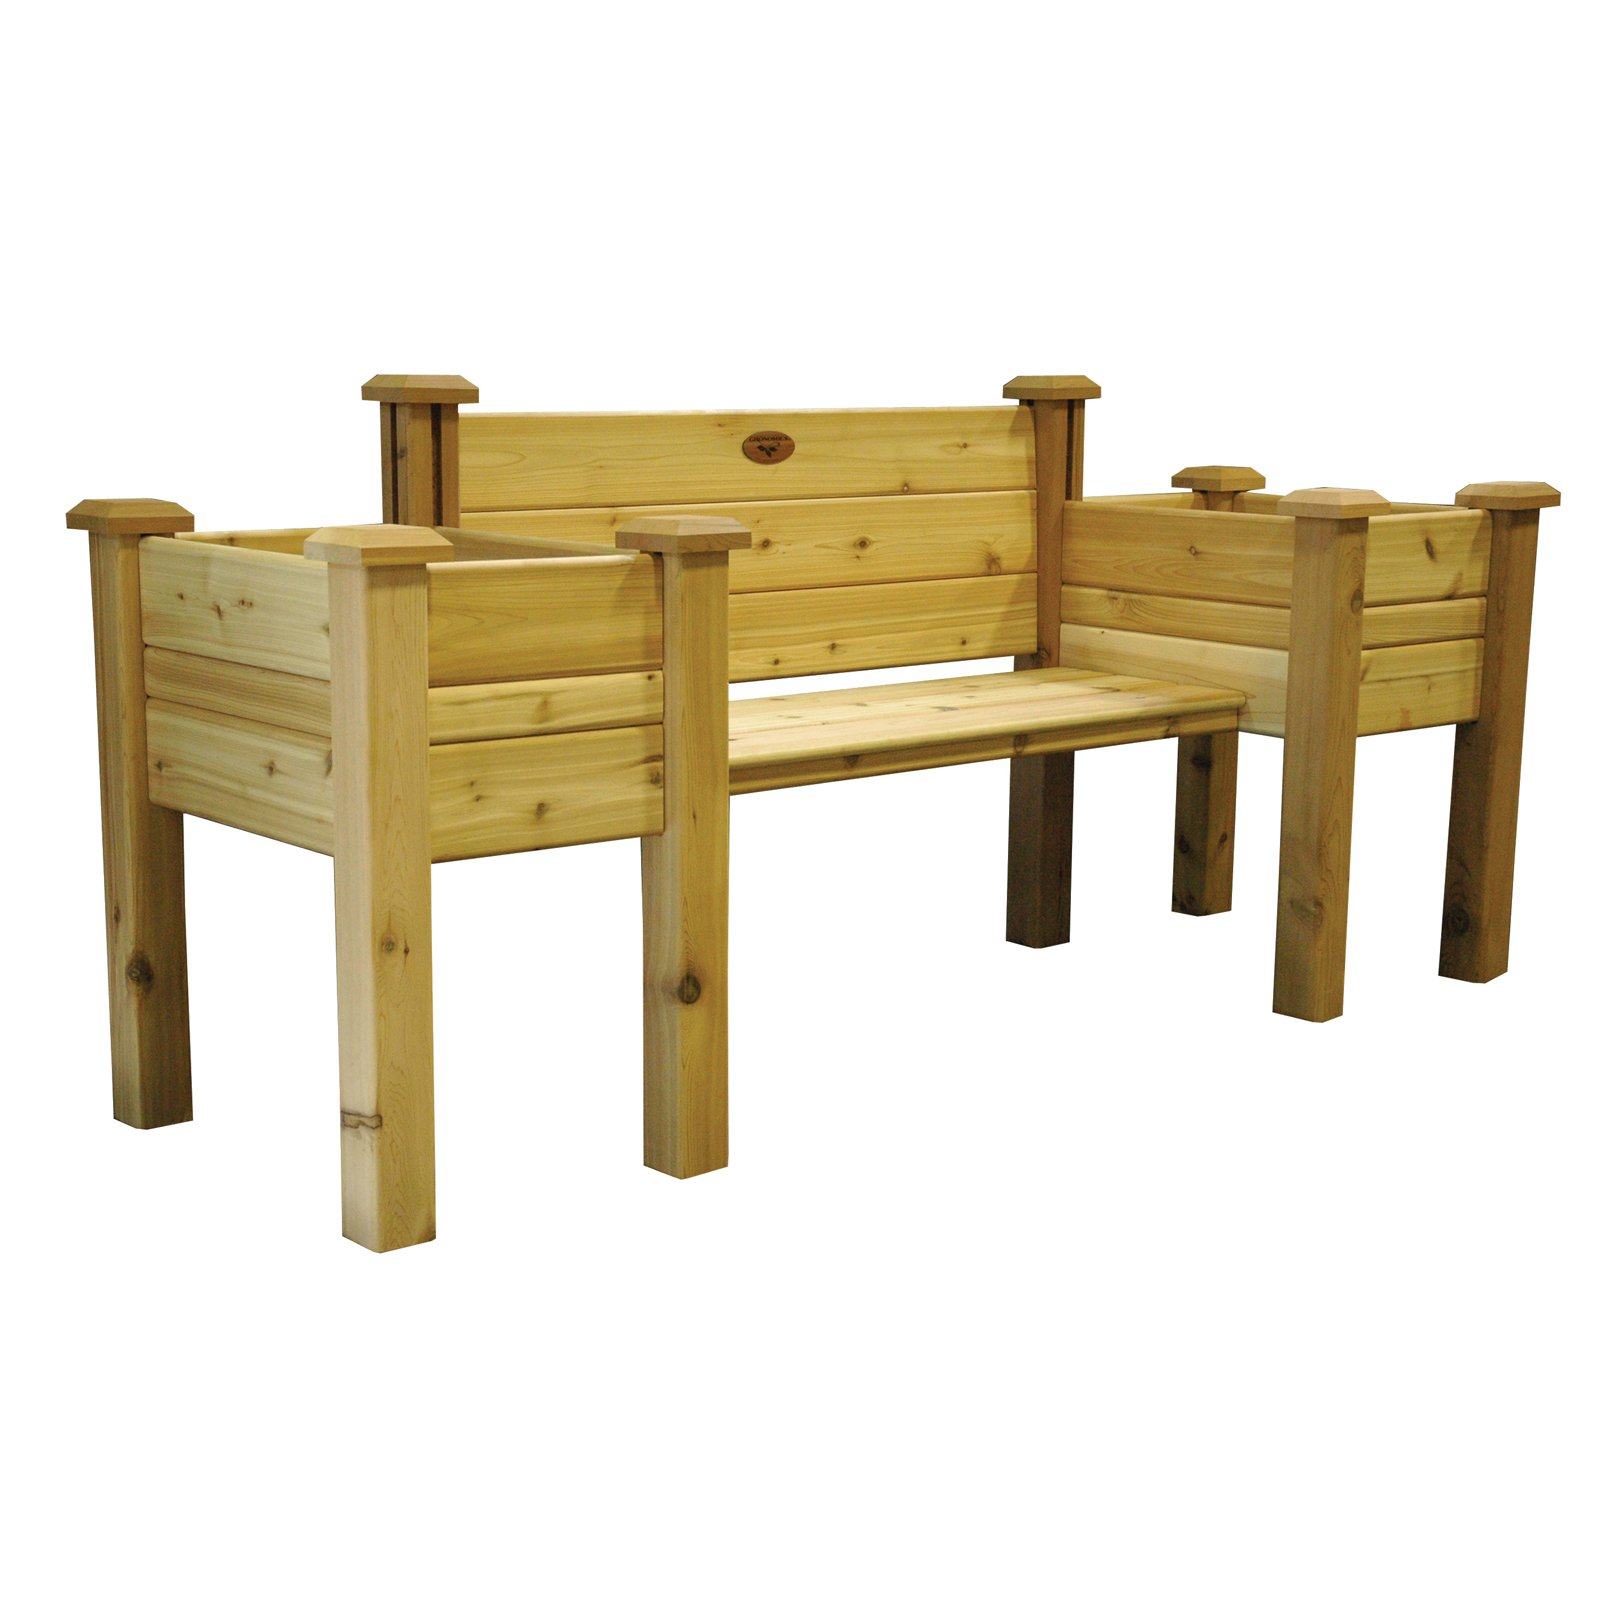 Gronomics Cedar Bench Planter